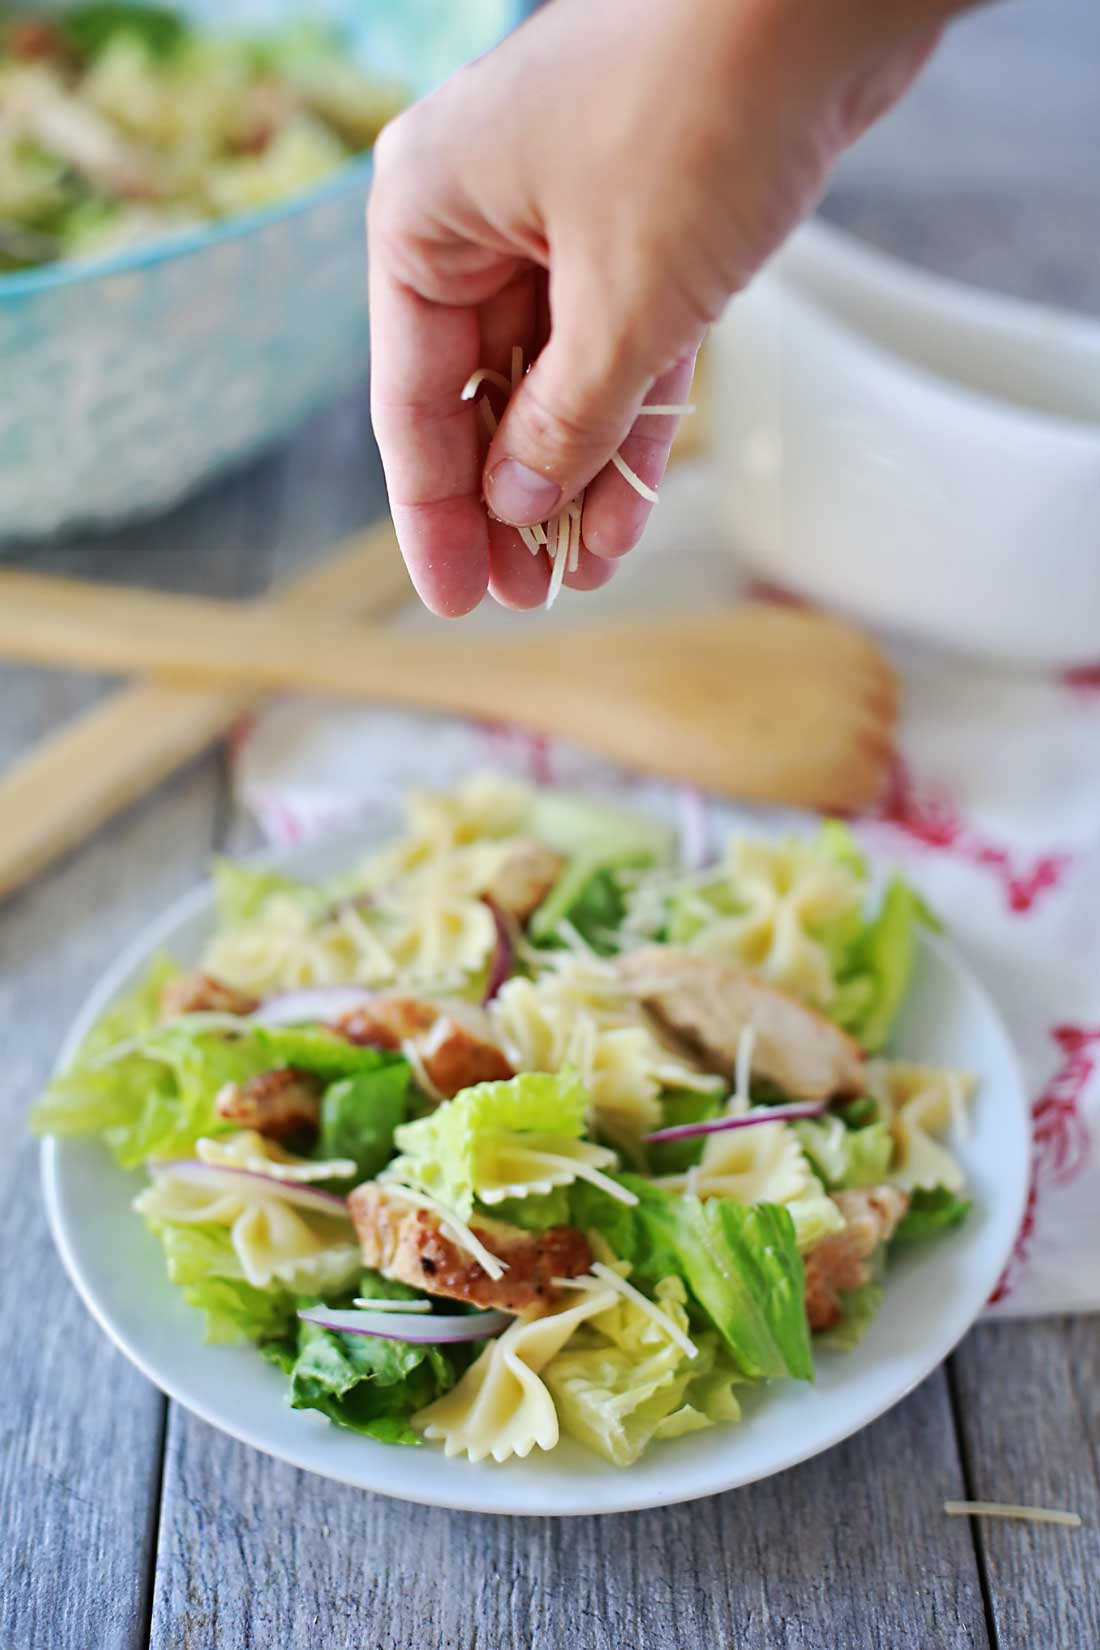 Delicious grilled chicken caesar salad with bowtie noodles. SOOO GOOD!!!!